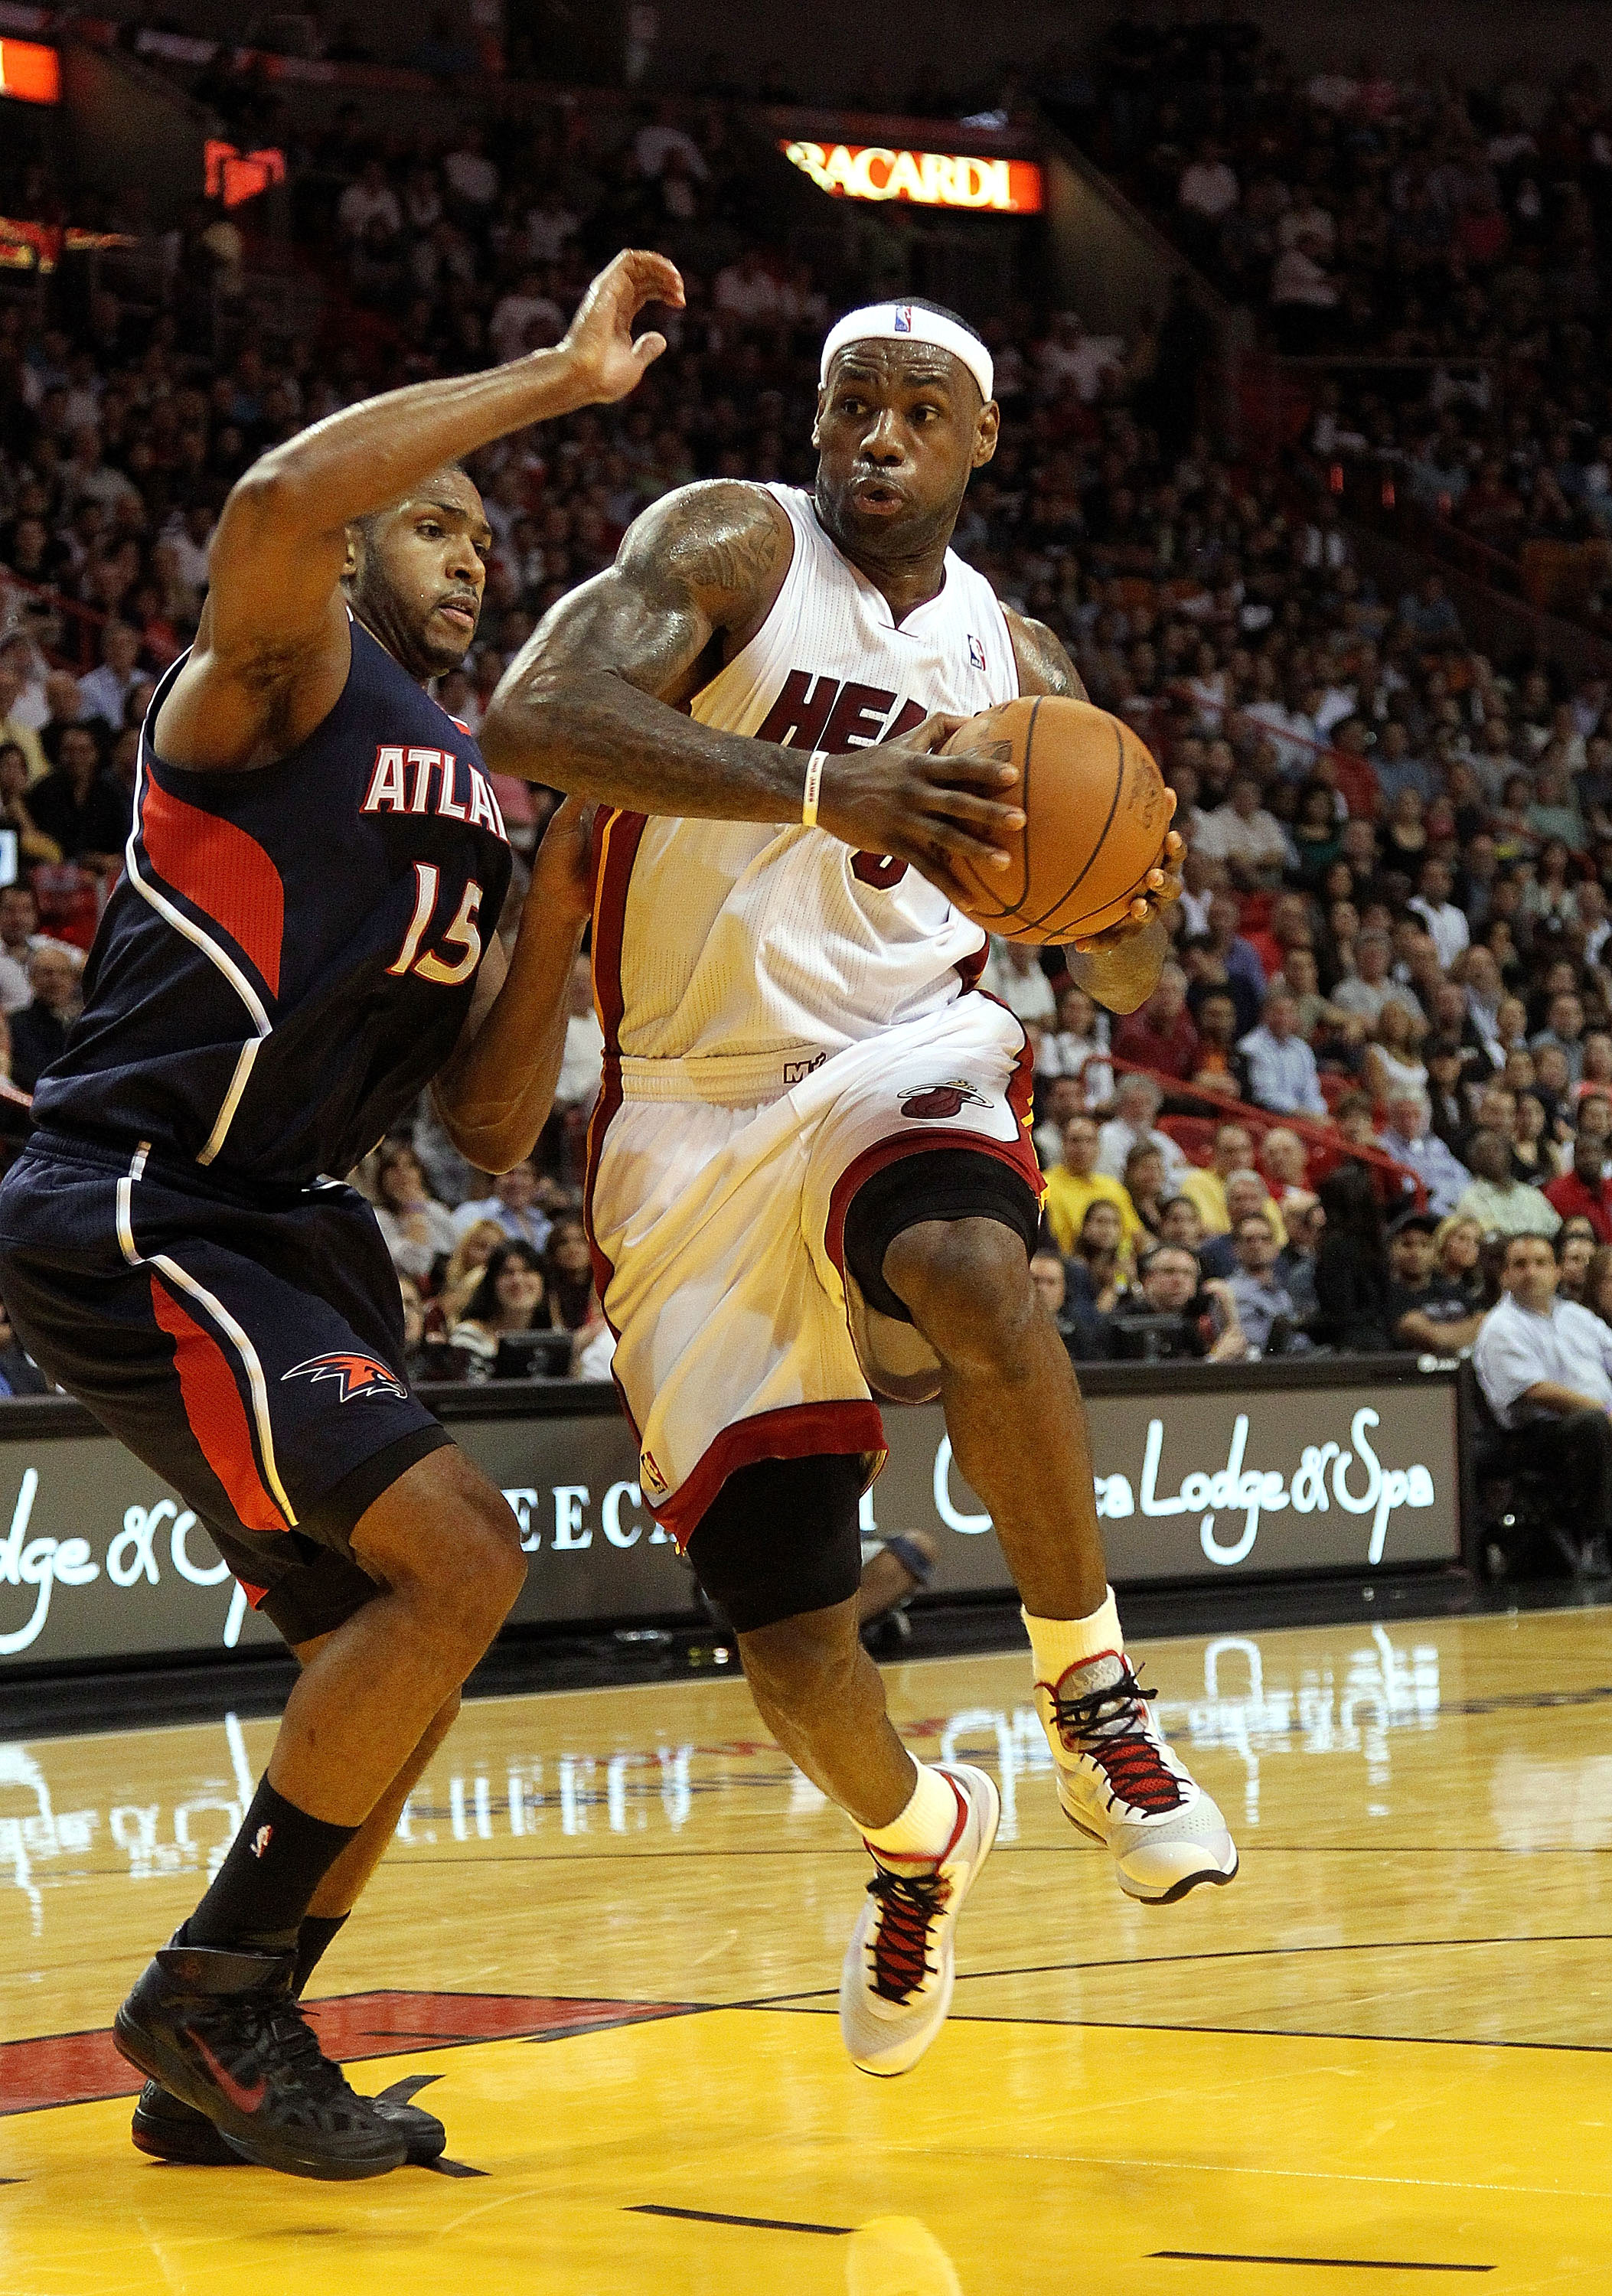 MIAMI, FL - JANUARY 18:  LeBron James #6 of the Miami Heat is guarded by Al Horford #15 of the Atlanta Hawks during a game at American Airlines Arena on January 18, 2011 in Miami, Florida. NOTE TO USER: User expressly acknowledges and agrees that, by down